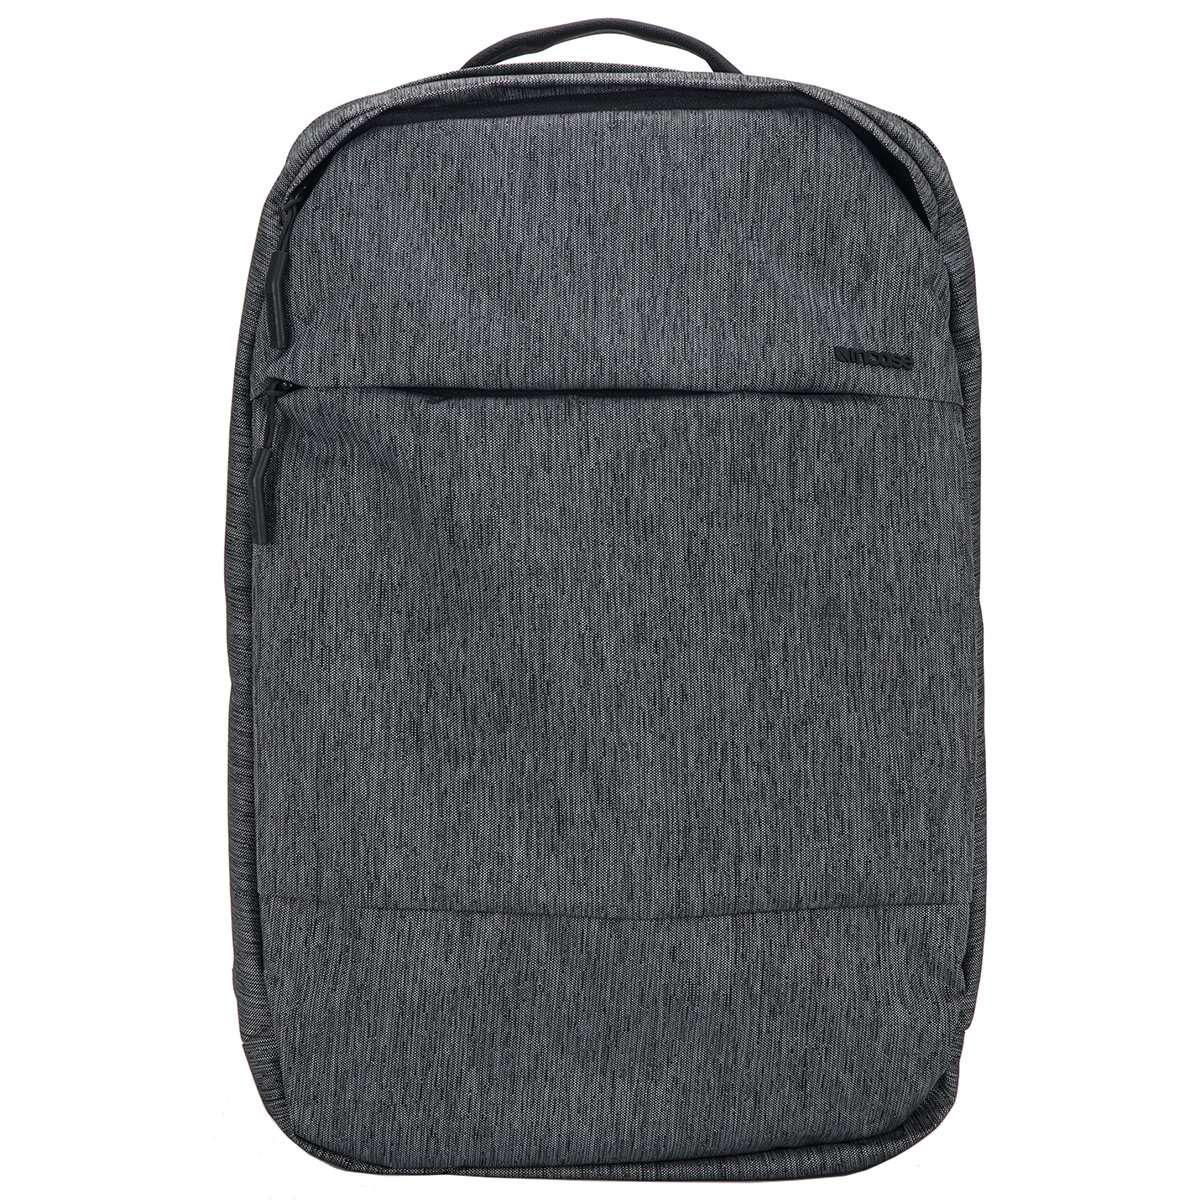 Incase City 17'' Laptop Backpack CL55569 Grey by Incase